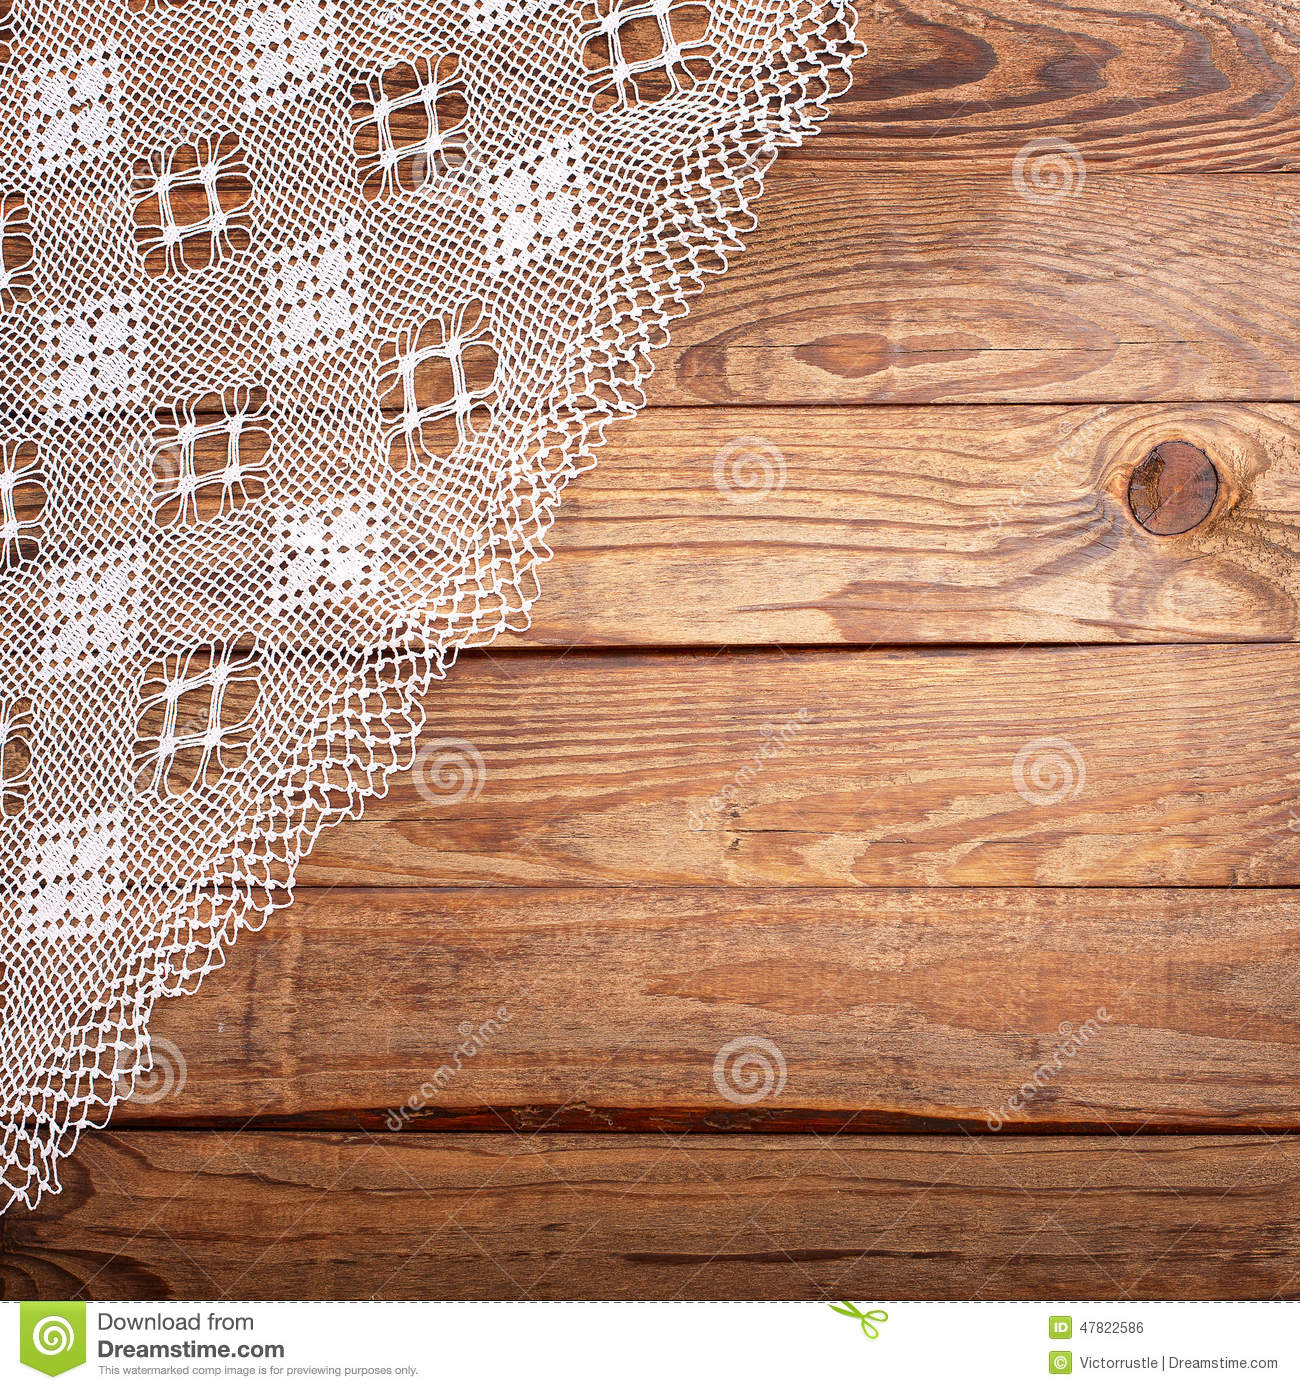 Wood table top texture - Wood Texture Wooden Table With White Lace Tablecloth Top View Royalty Free Stock Image